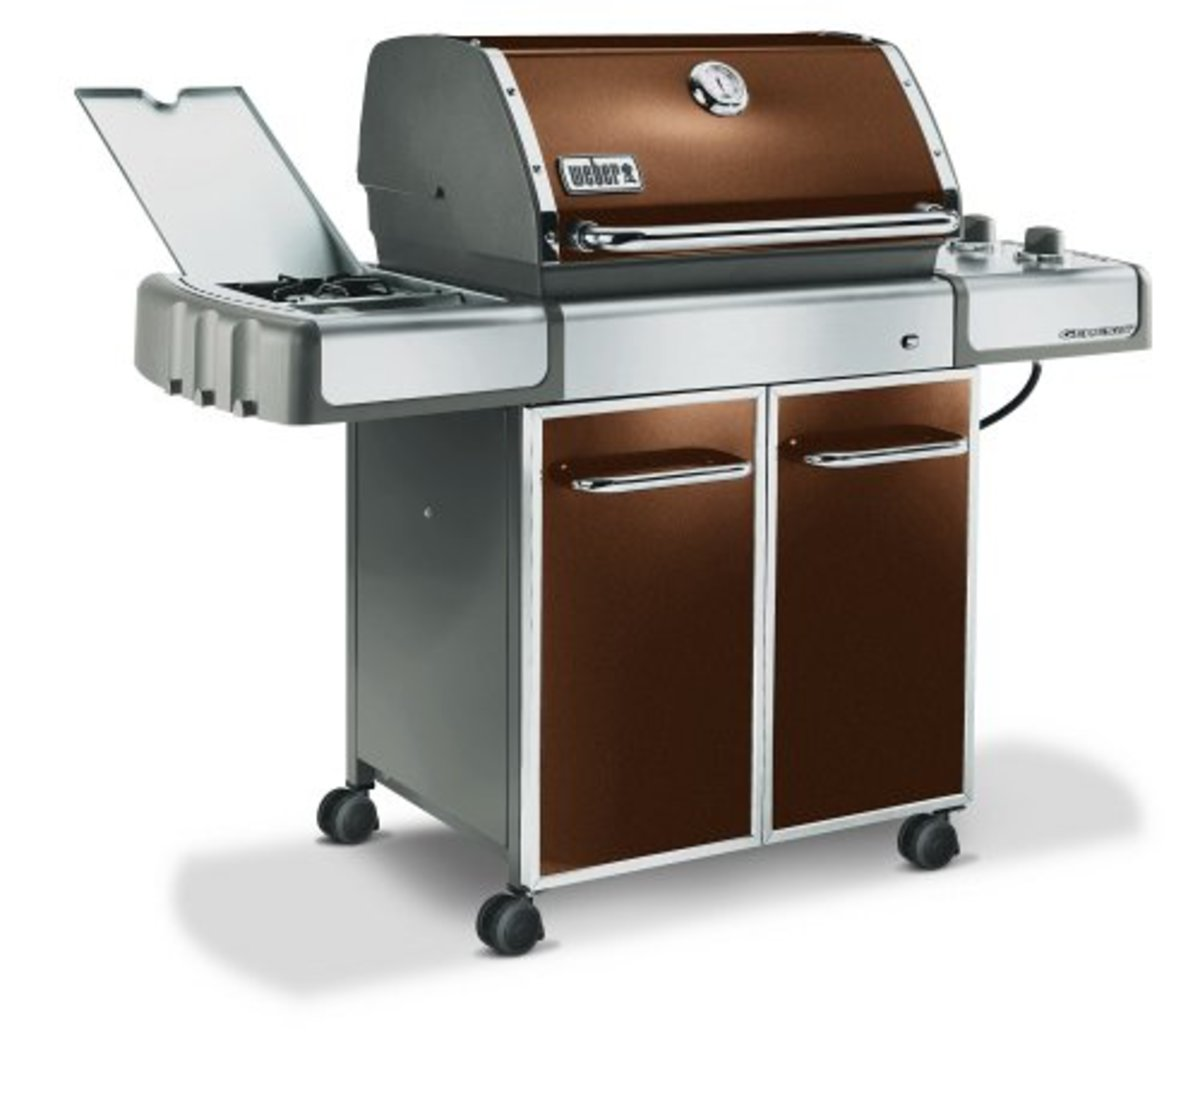 Why Should I Buy A Weber Gas Grill?